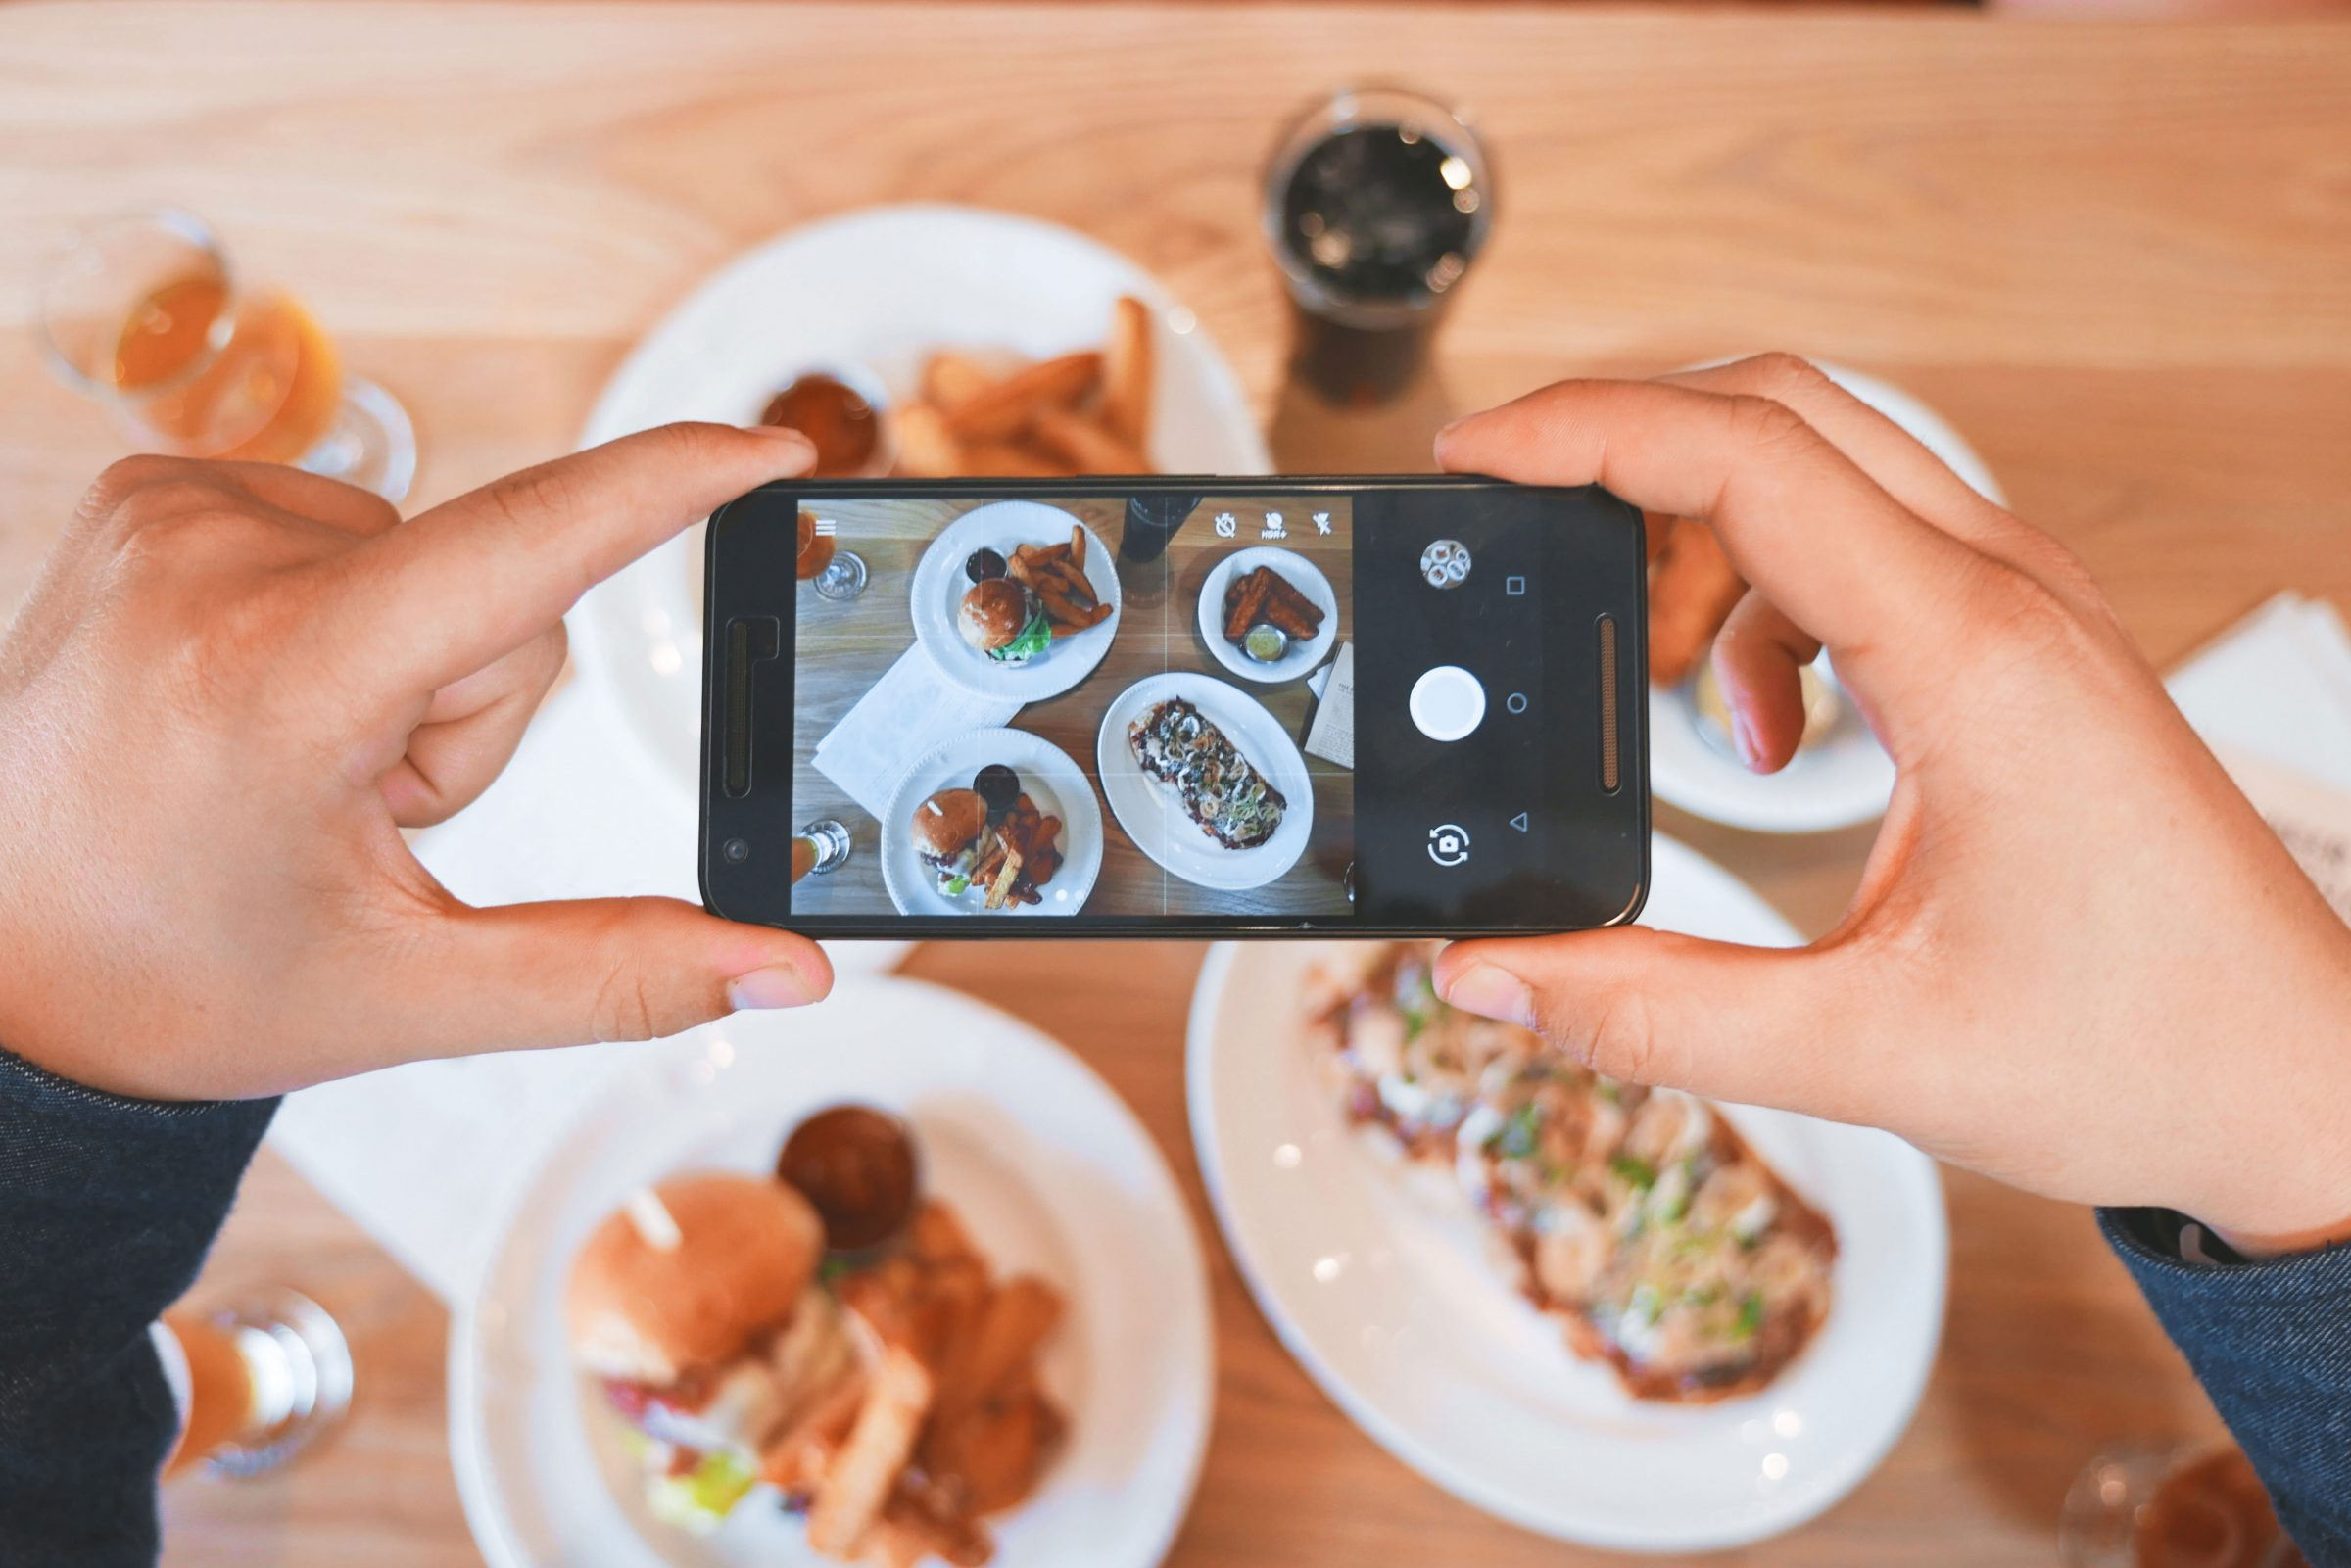 Customers love sharing foodie pictures to social media - this is a great way for your restaurant to get some promotion